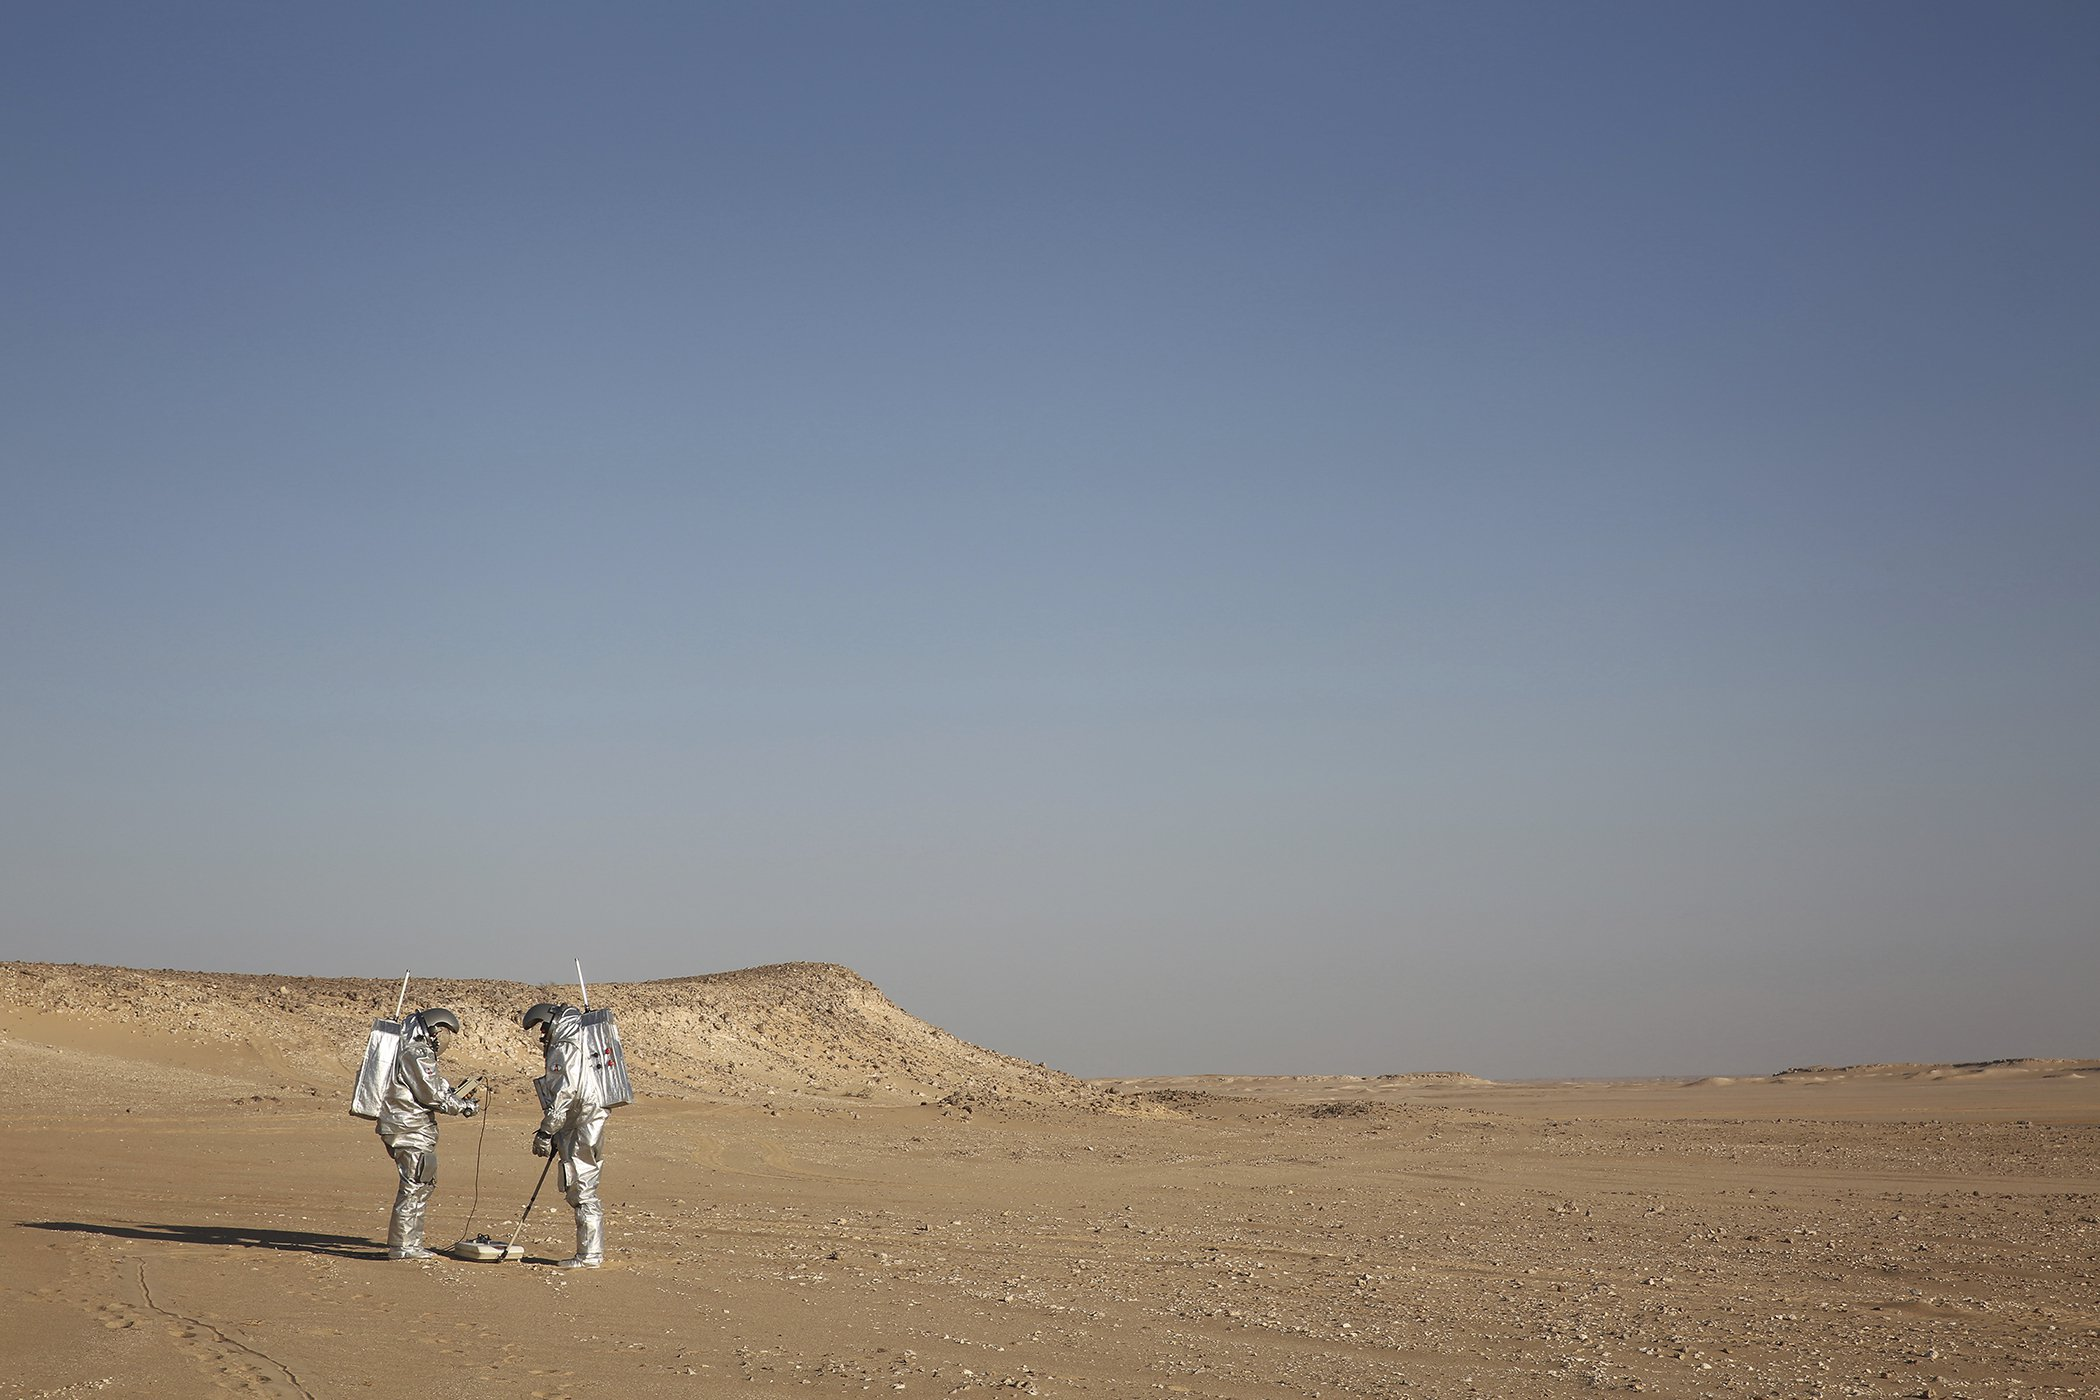 Oman-Mars-Training-Environmental-Photos-February.jpg